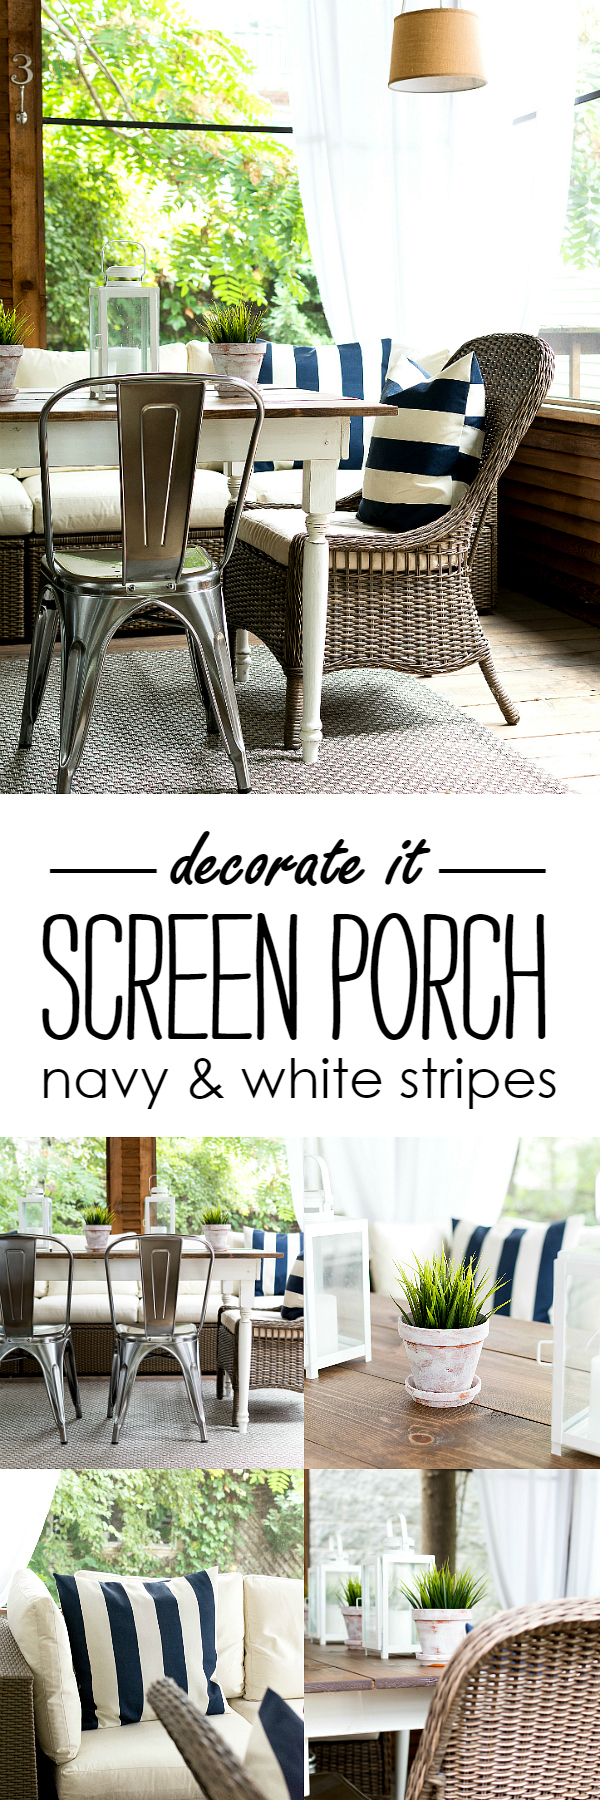 Navy White Screen Porch Decorating Ideas